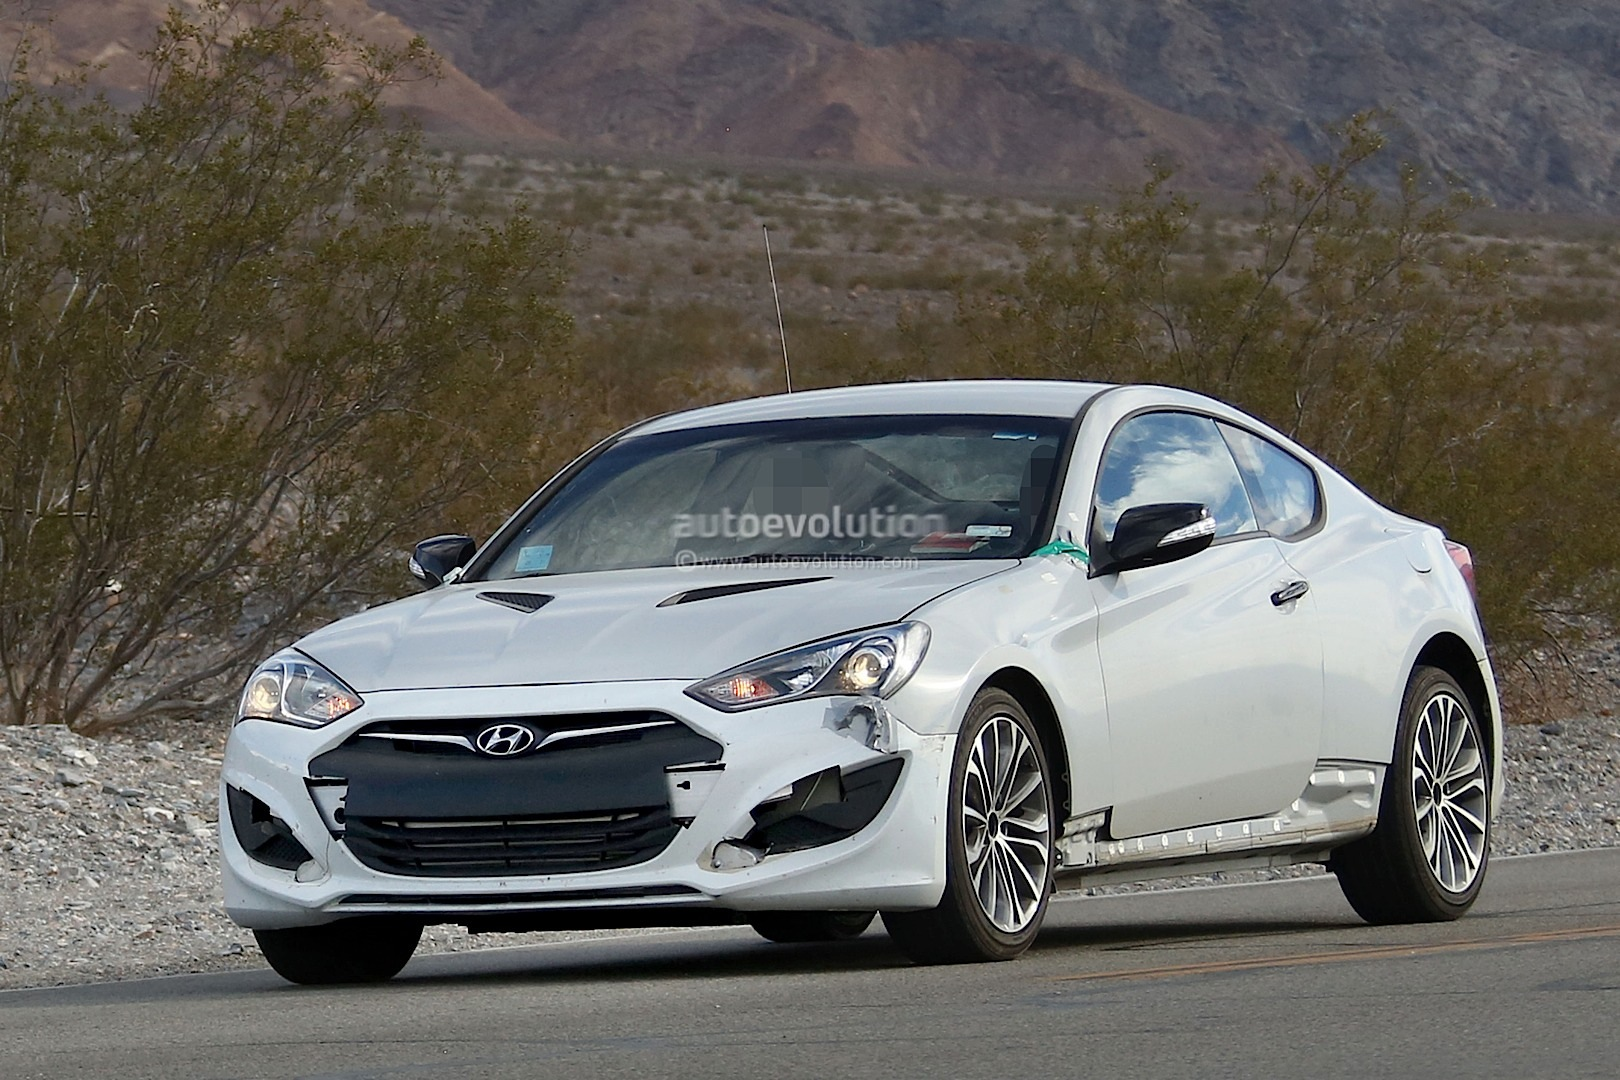 new 2017 hyundai genesis coupe spied for the first time autoevolution. Black Bedroom Furniture Sets. Home Design Ideas